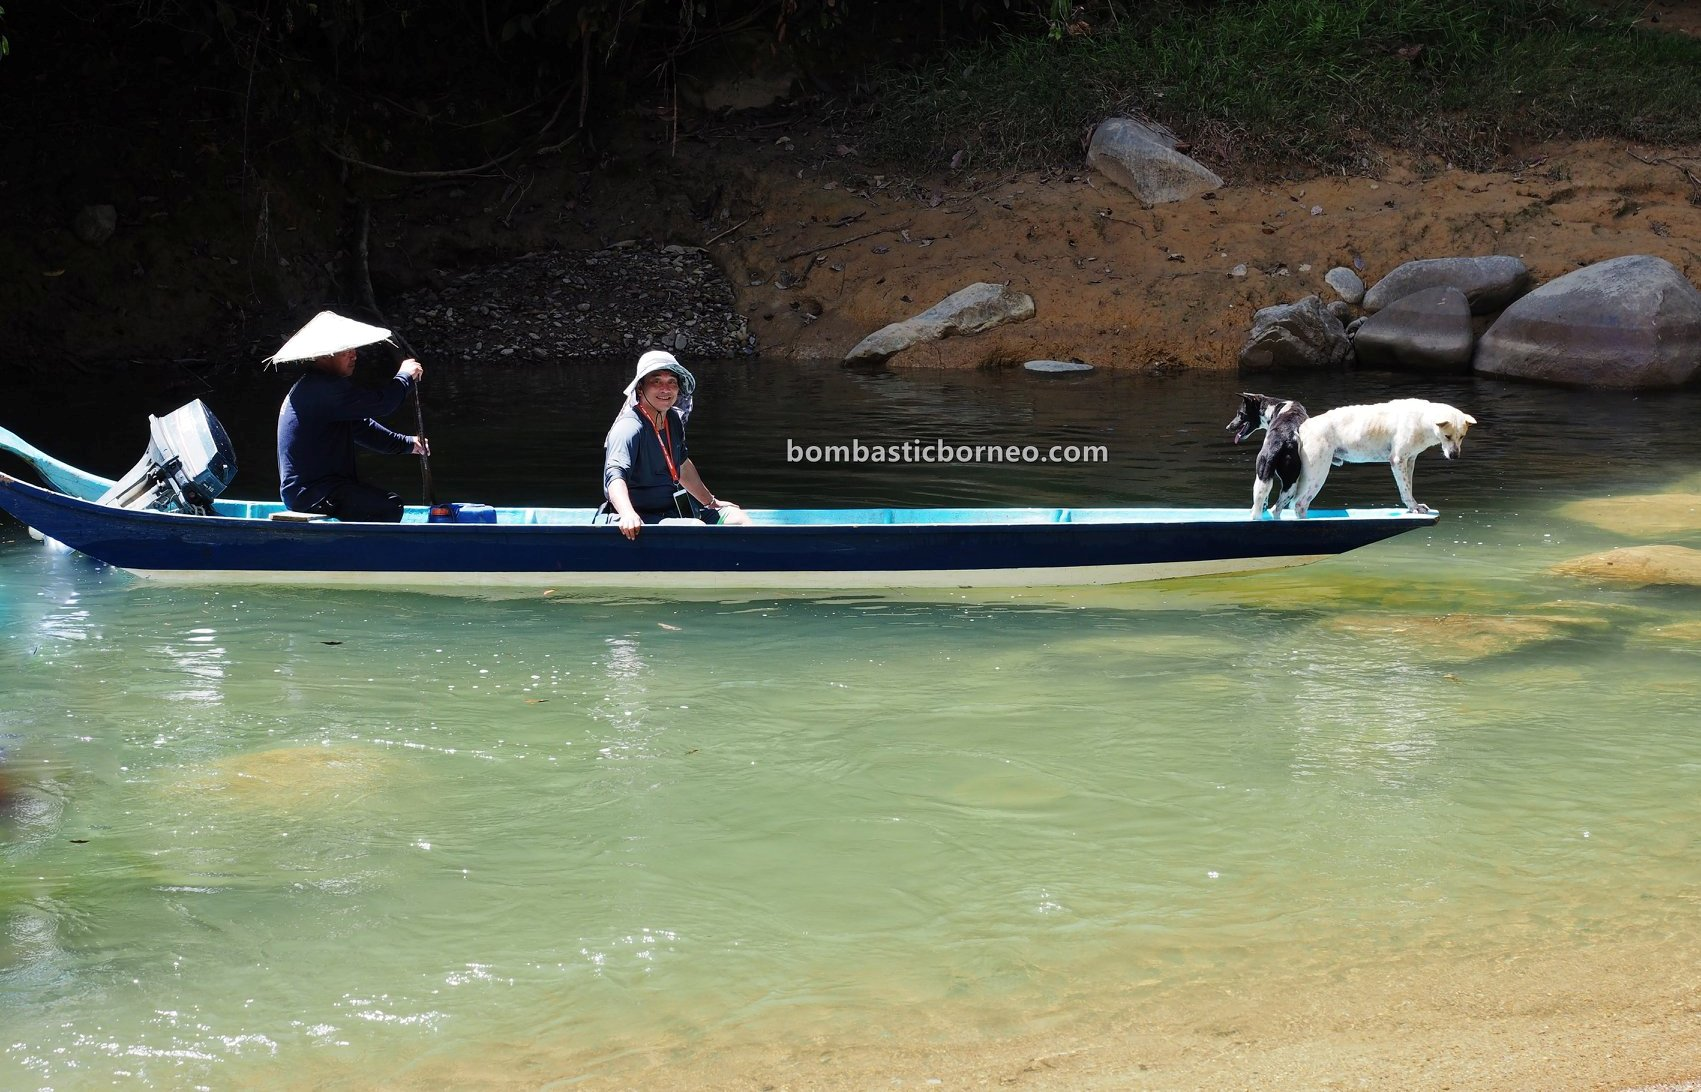 Embankment Dam, Balui river, traditional, fishing trip, dog hunting, Memburu, native, Orang Ulu, tourist attraction, travel guide, Trans Border, Borneo, 穿越婆罗洲游踪, 砂拉越钓鱼之旅, 巫拉甲马来西亚,